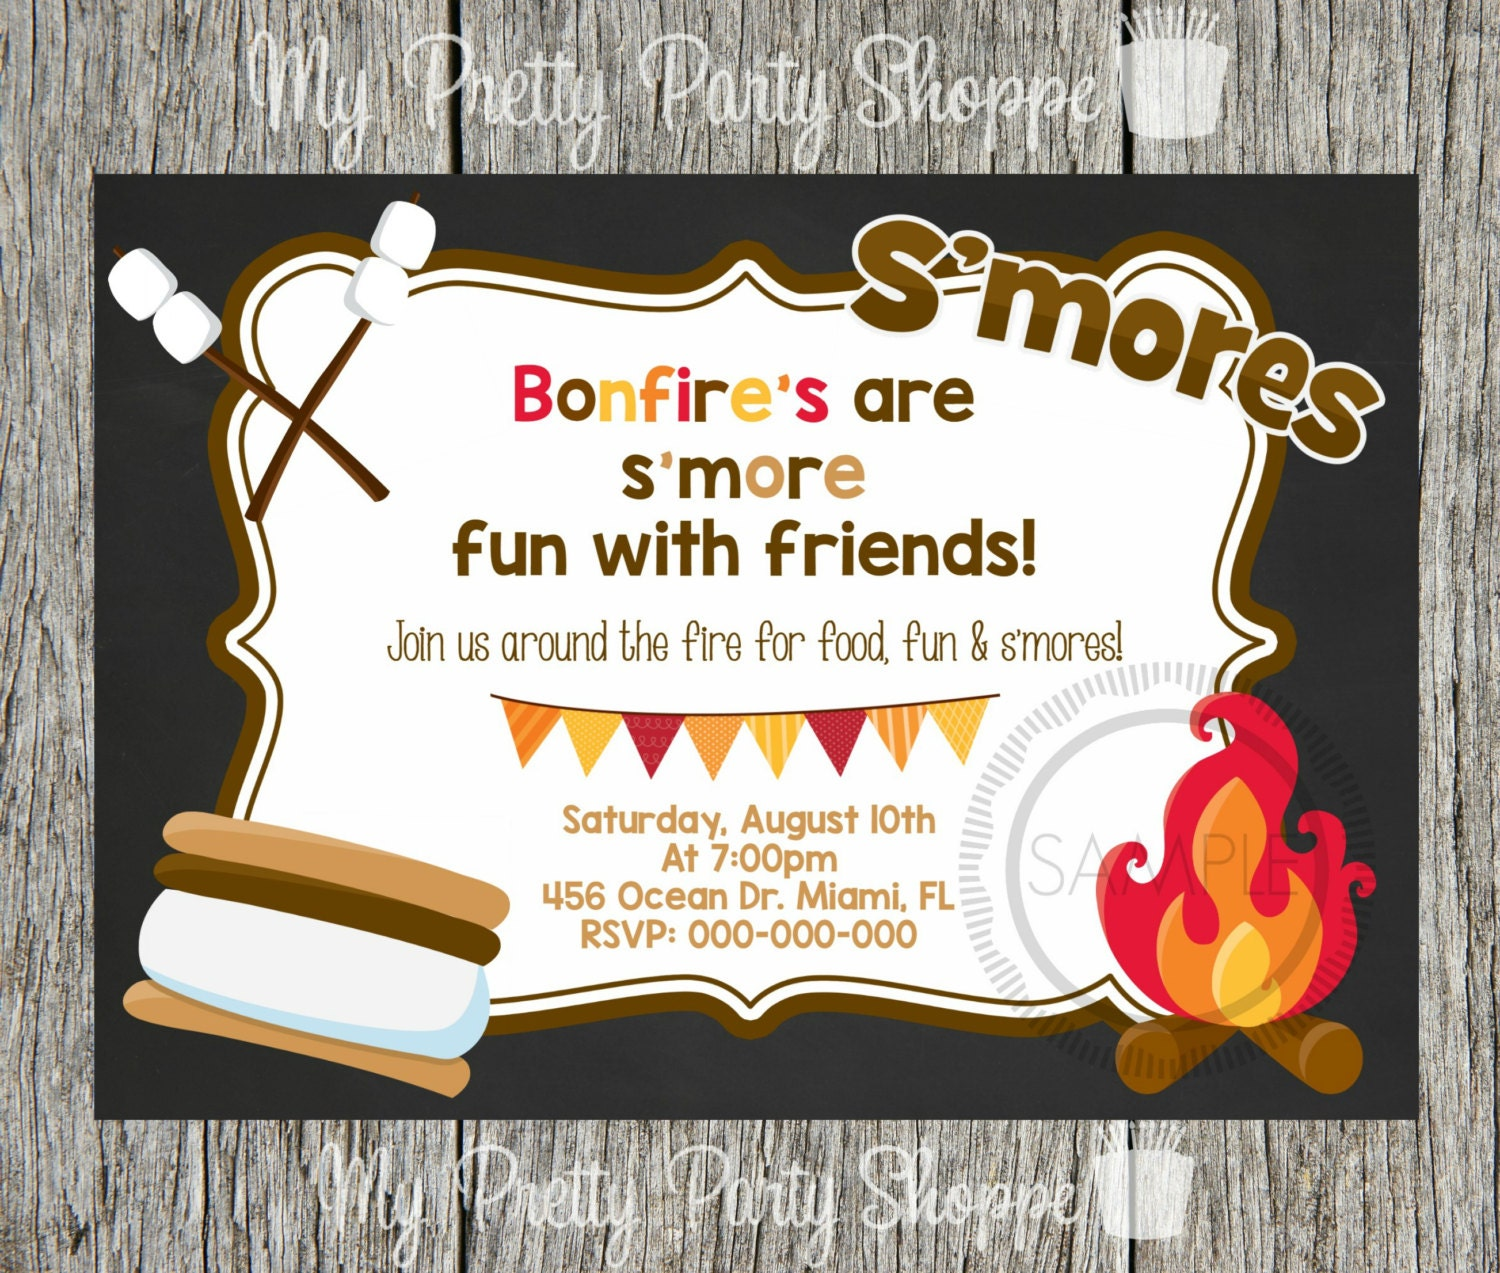 bonfire  fire pit  s'more  s'mores  camp  camping, invitation samples